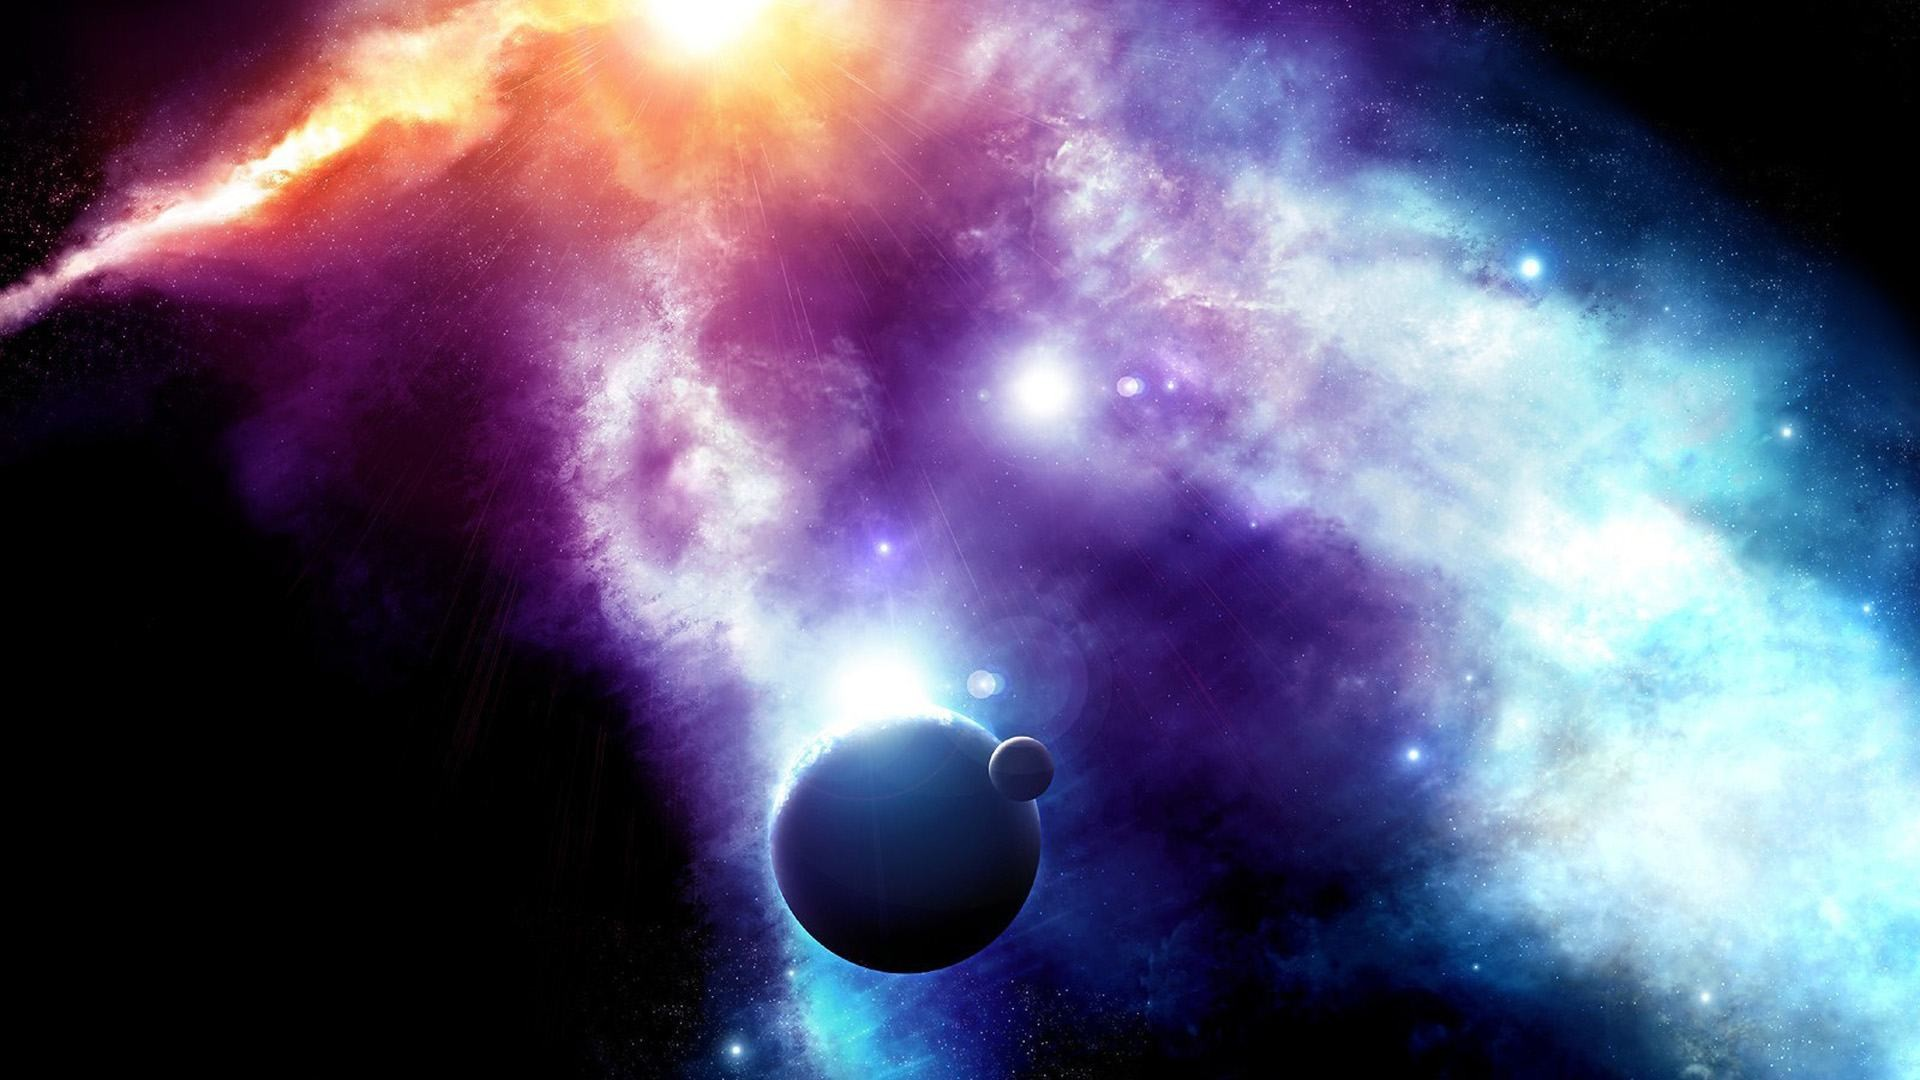 3D Space Android Wallpaper